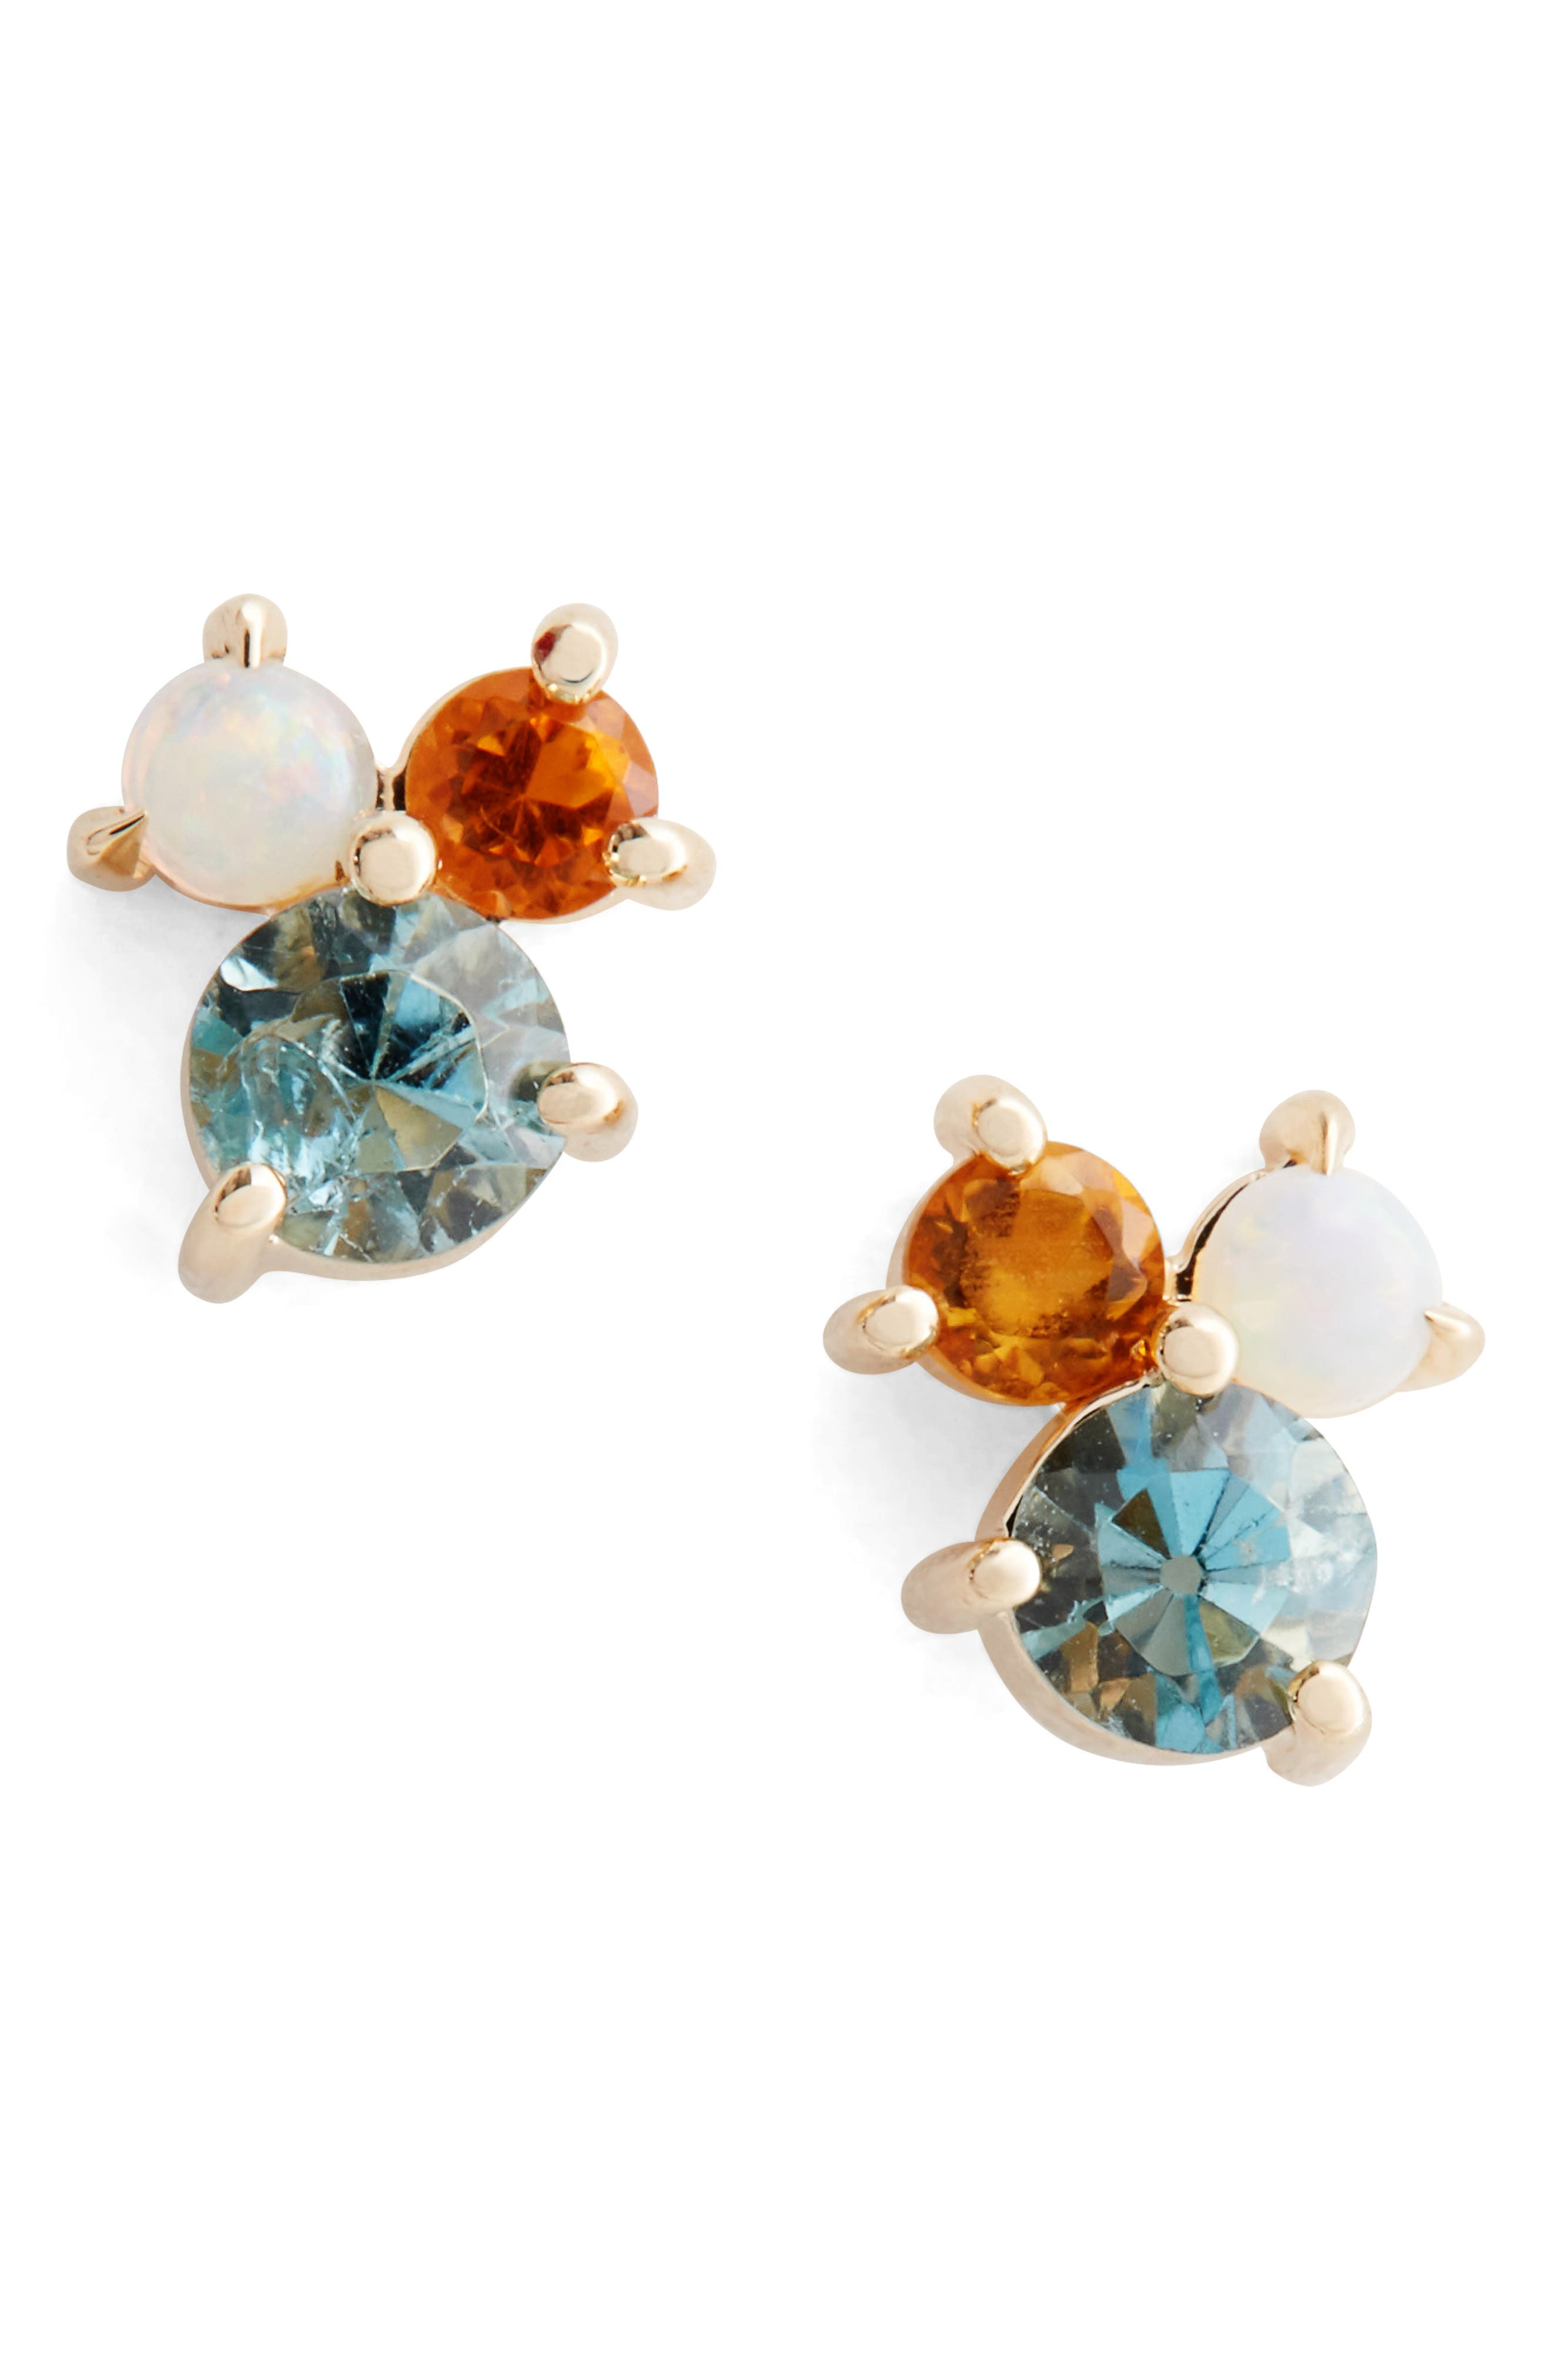 MOCIUN Aquamarine, Citrine & Opal Earrings (Nordstrom Exclusive)